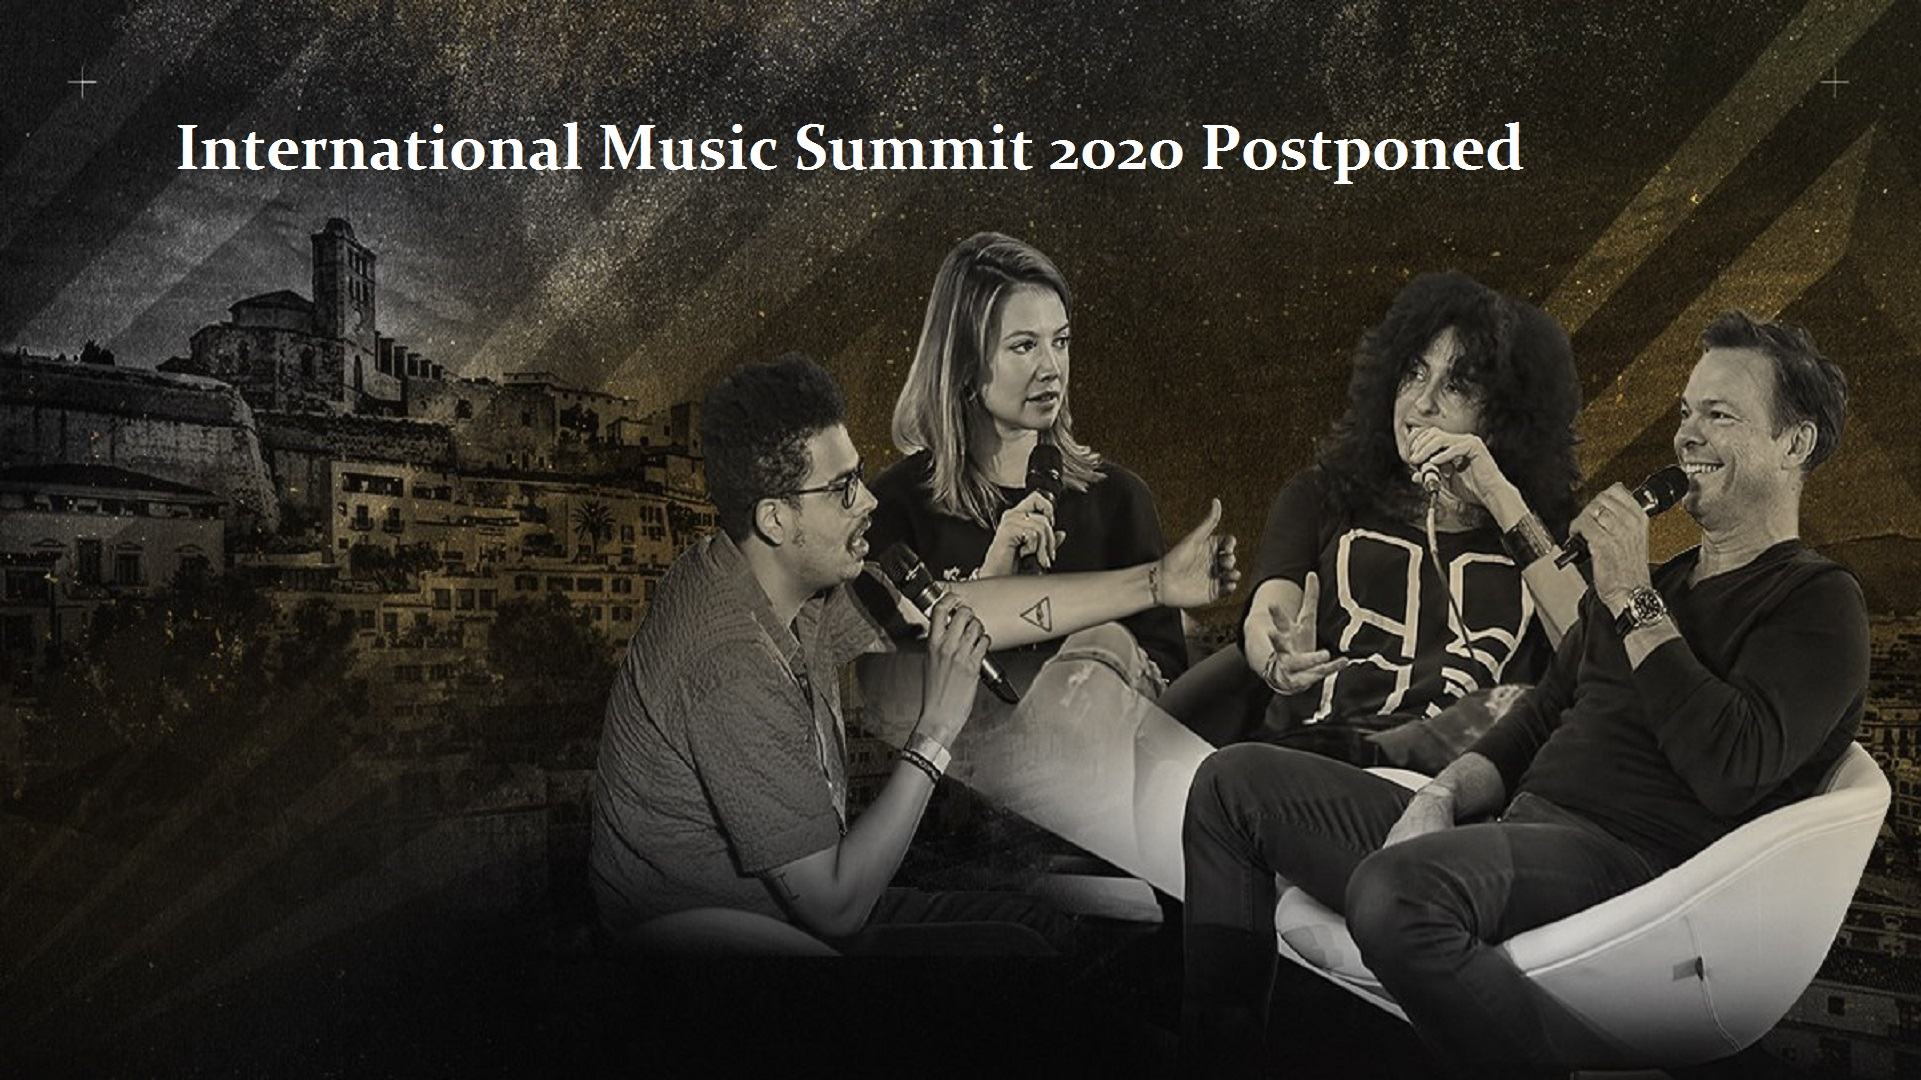 Internatinal music summit